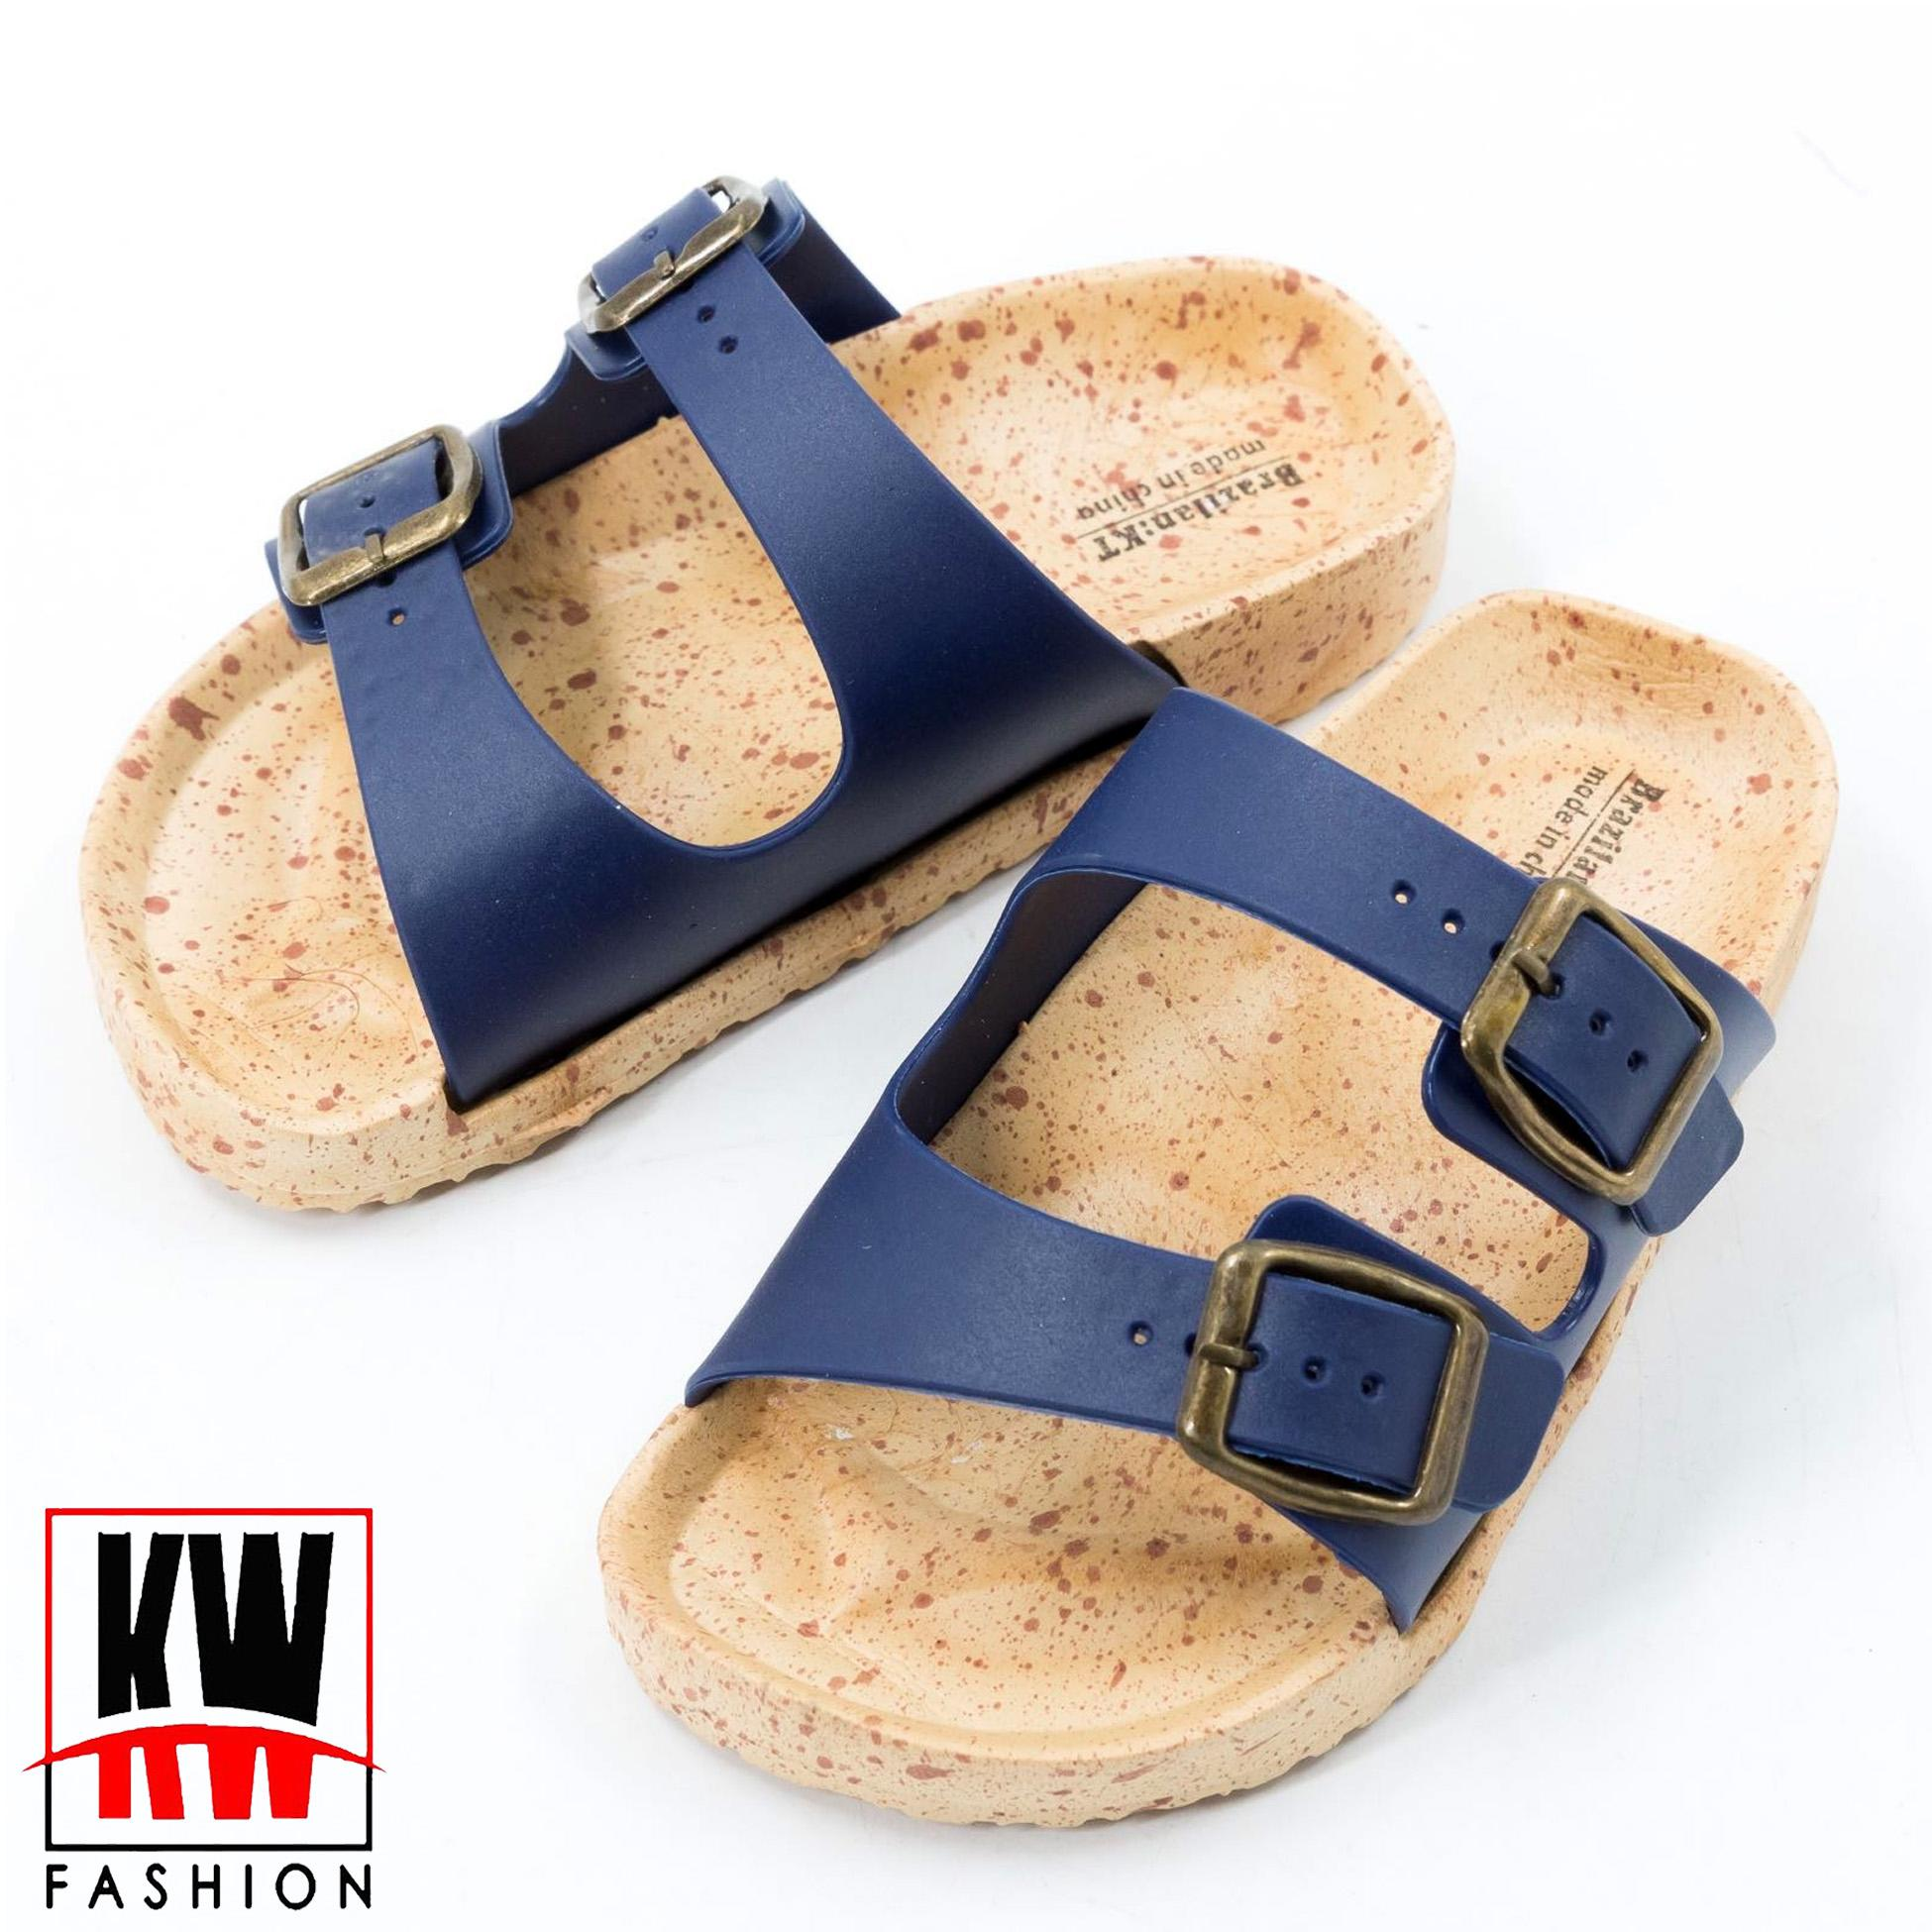 5eafb5e758c Womens Sandals for sale - Ladies Sandals online brands